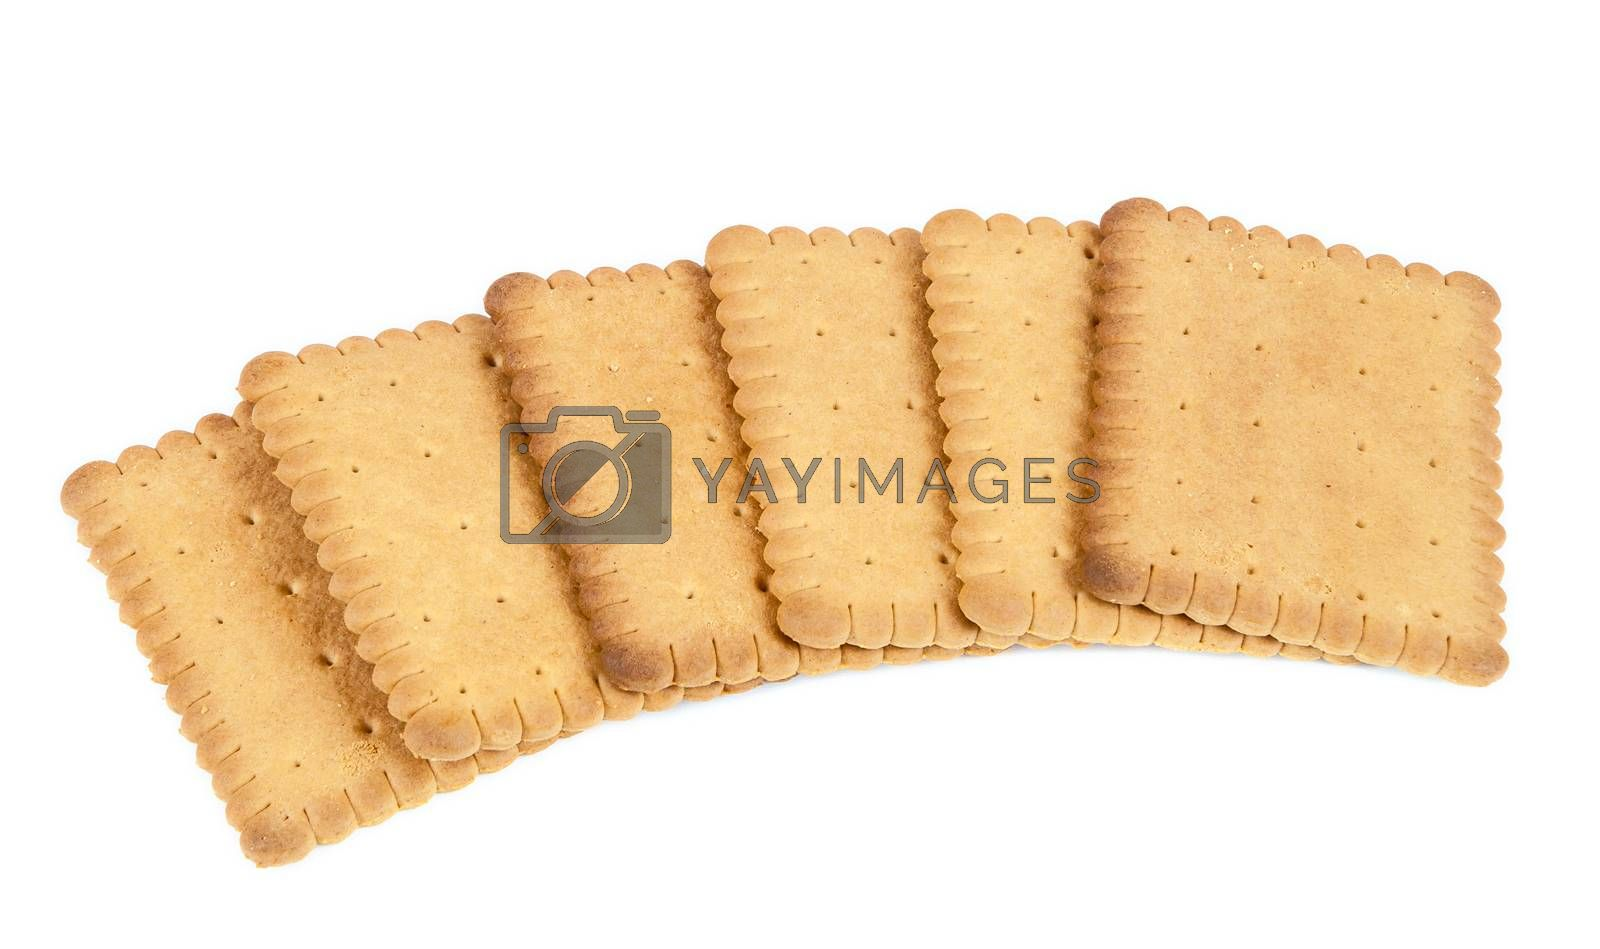 Royalty free image of Biscuits on white background by mkos83